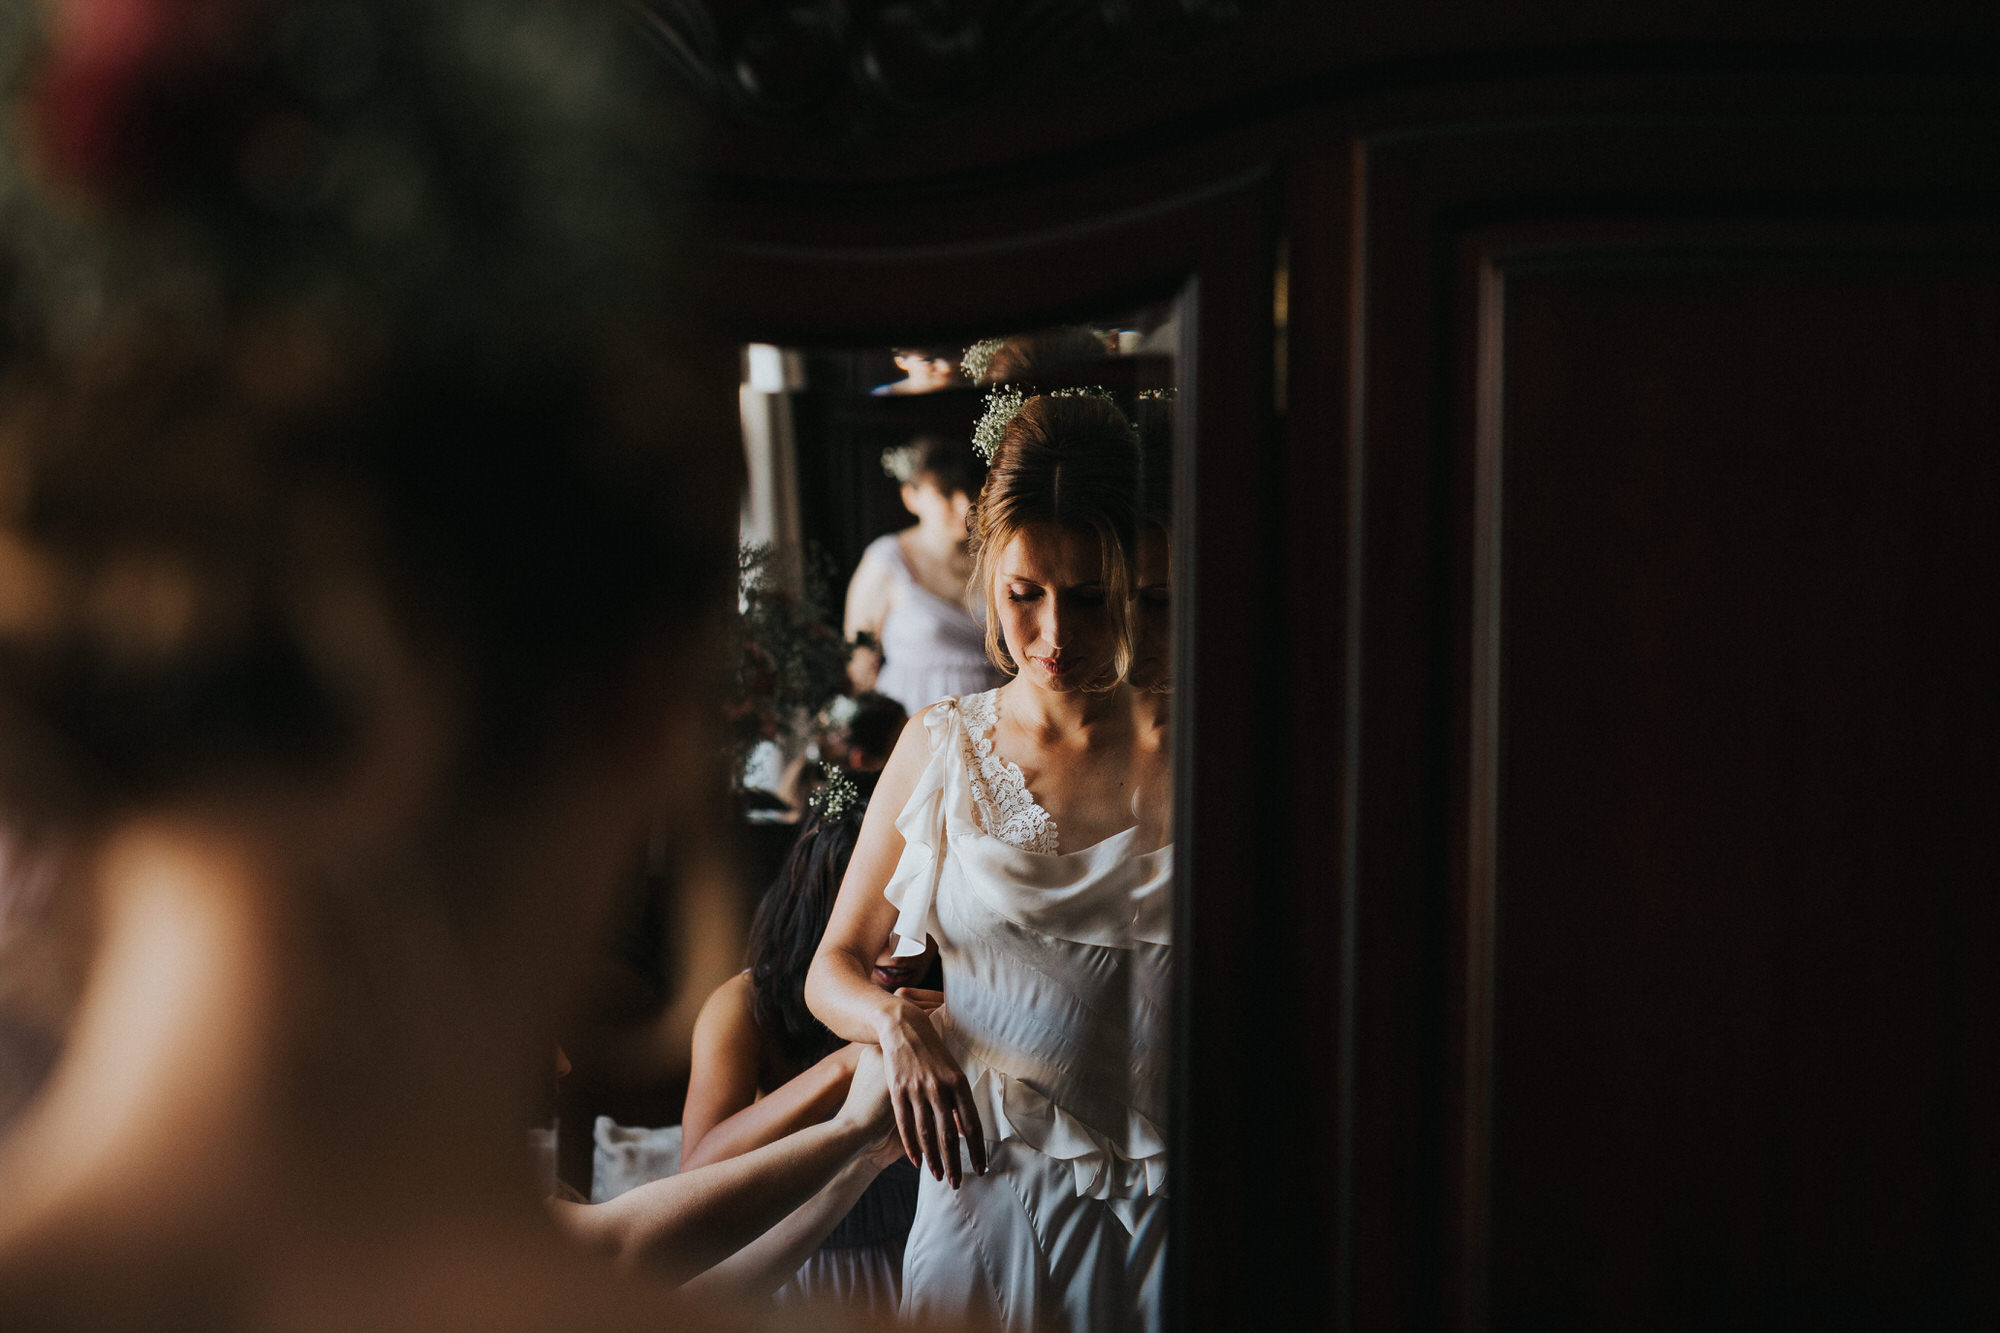 Filipe Santiago Fotografia-fotografo-malveira-lisboa-cascais-mafra-melhores-reportagem-wedding-photography-portugal-lisbon-best-natural-casamentos-lifestyle-bride-ideias-rustic-boho-hair-mackup-damas-preparativos-preparations-bridemaids-dress-storie-mirror